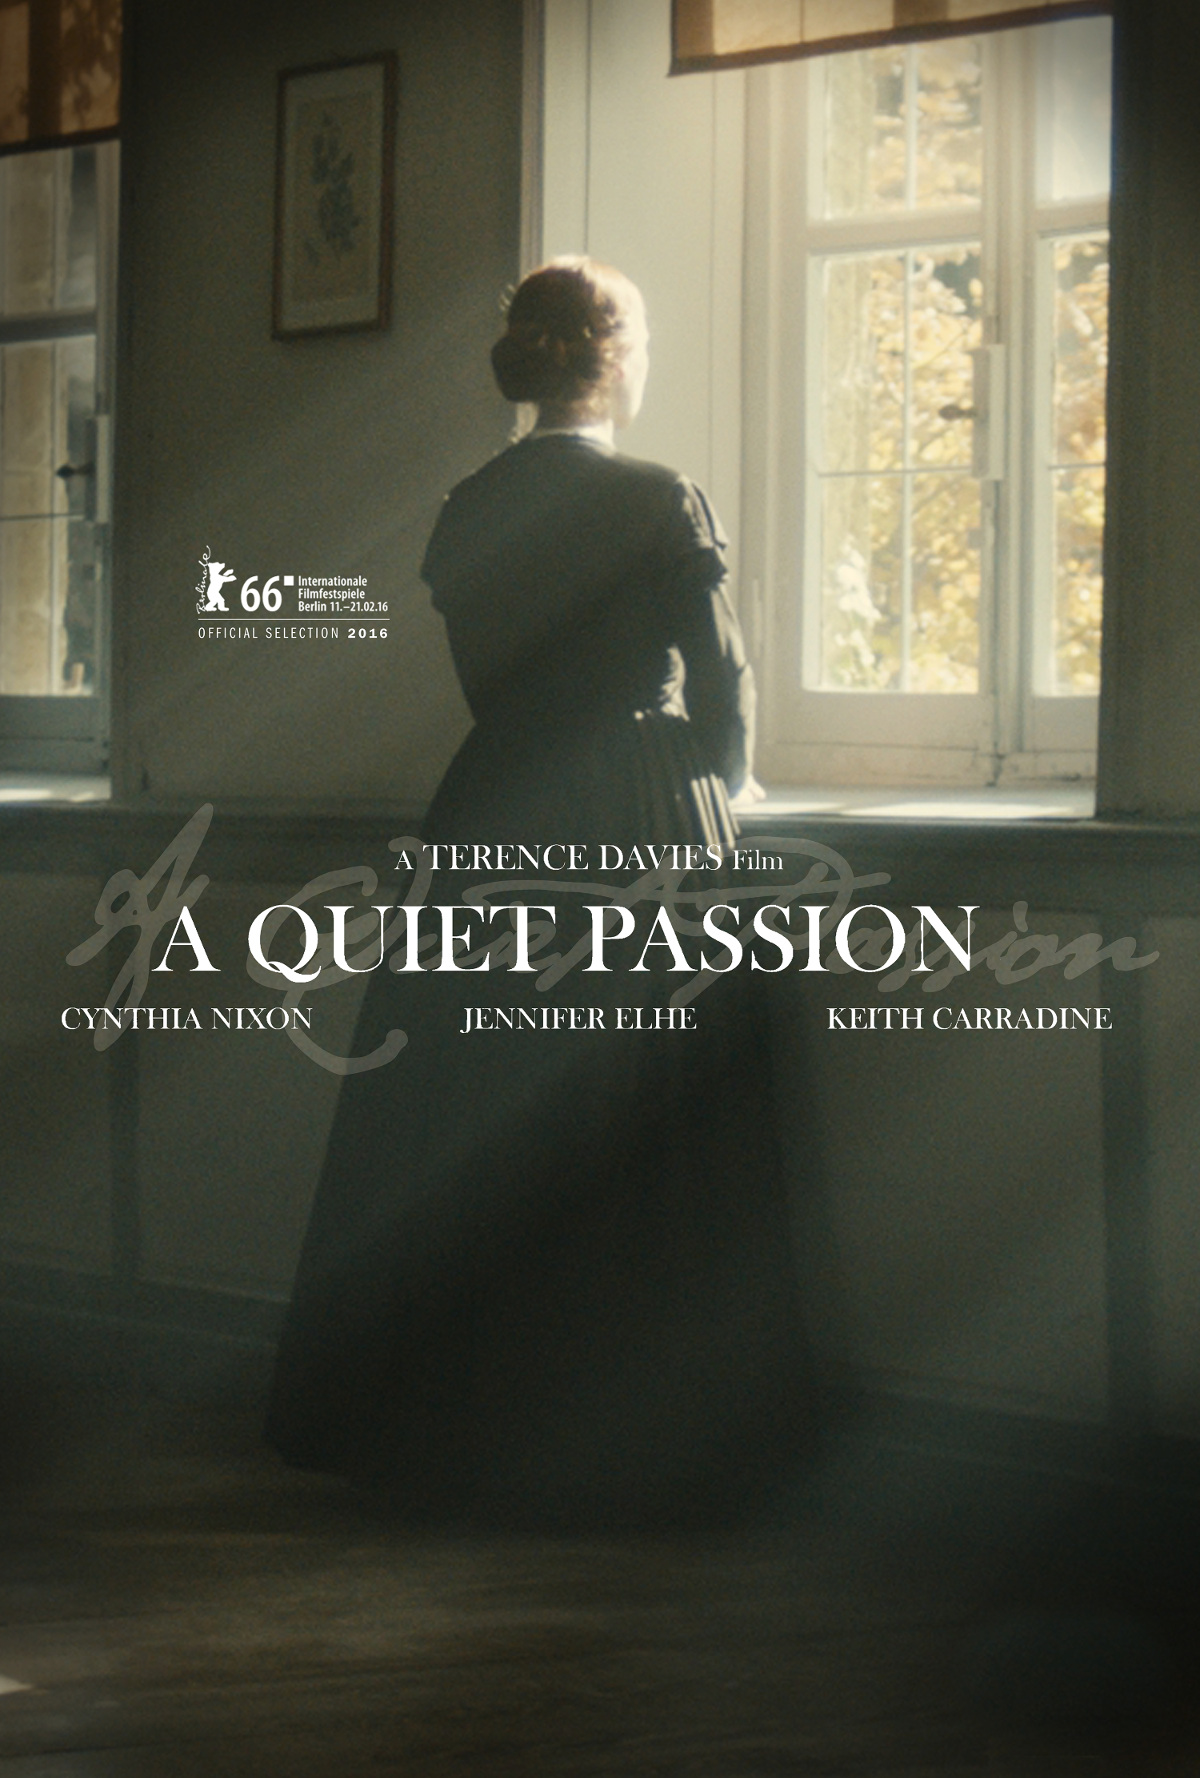 AQuietPassion